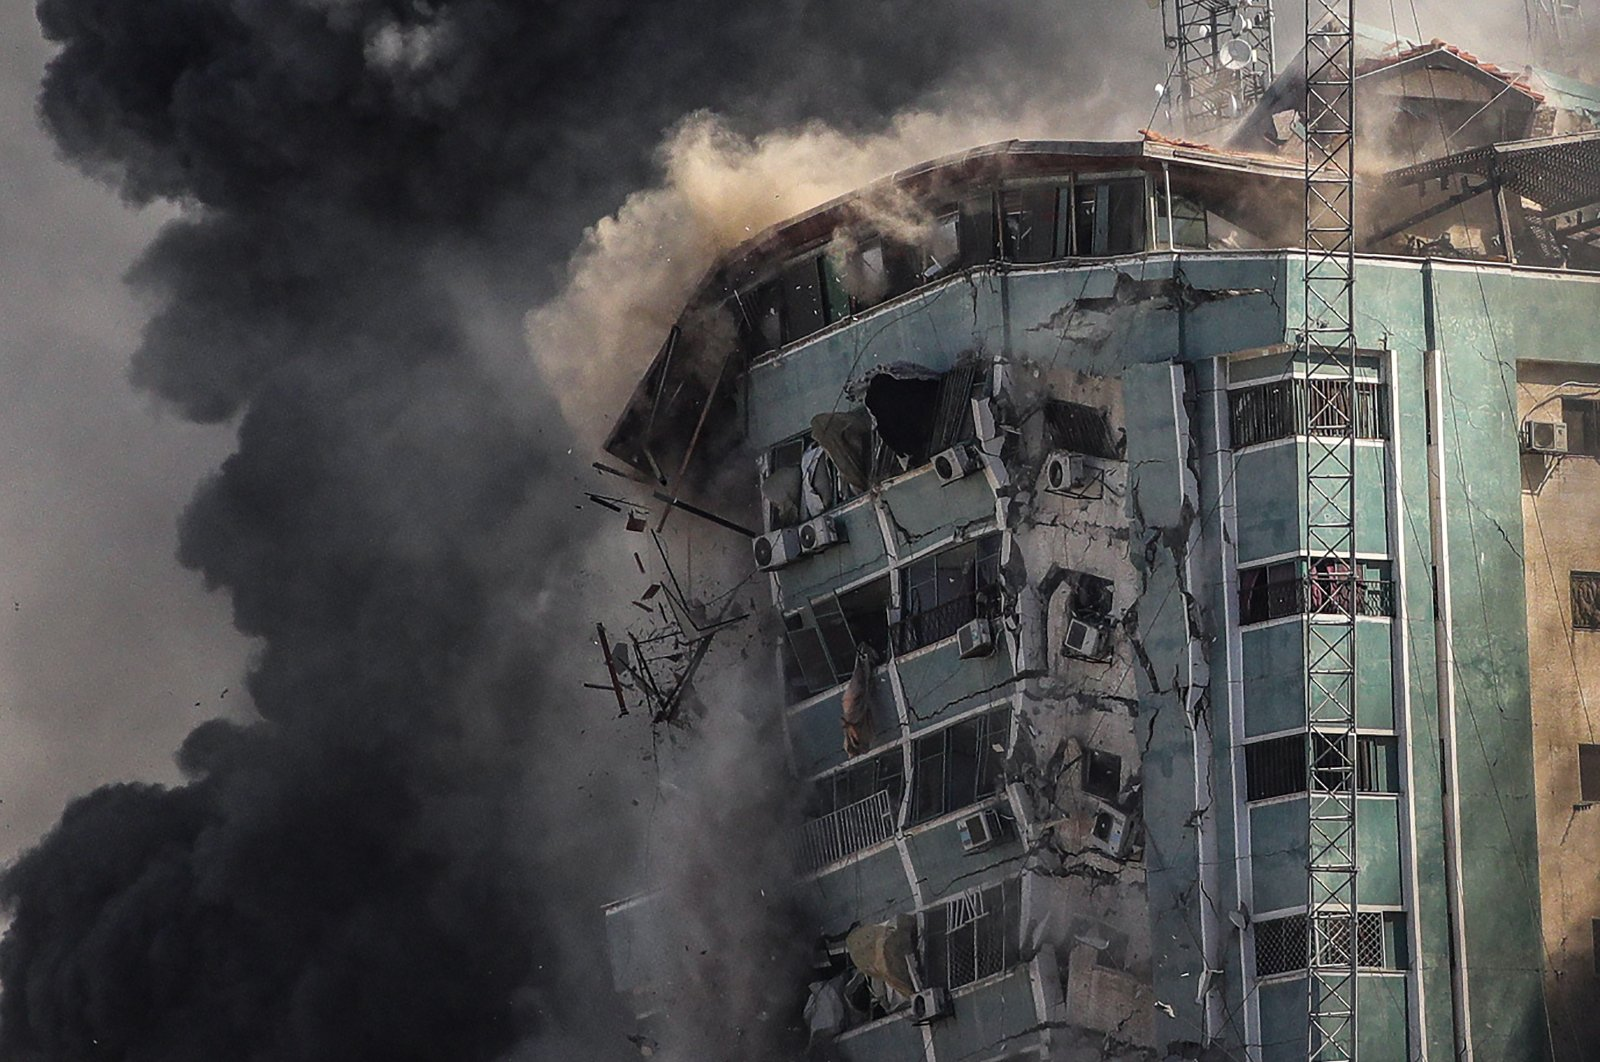 Smoke rises as a building collapses after an Israeli airstrike hits Al-Jalaa tower, which houses apartments and several media outlets, including The Associated Press and Al-Jazeera, in Gaza City, Palestine, May 15, 2021. (EPA Photo)